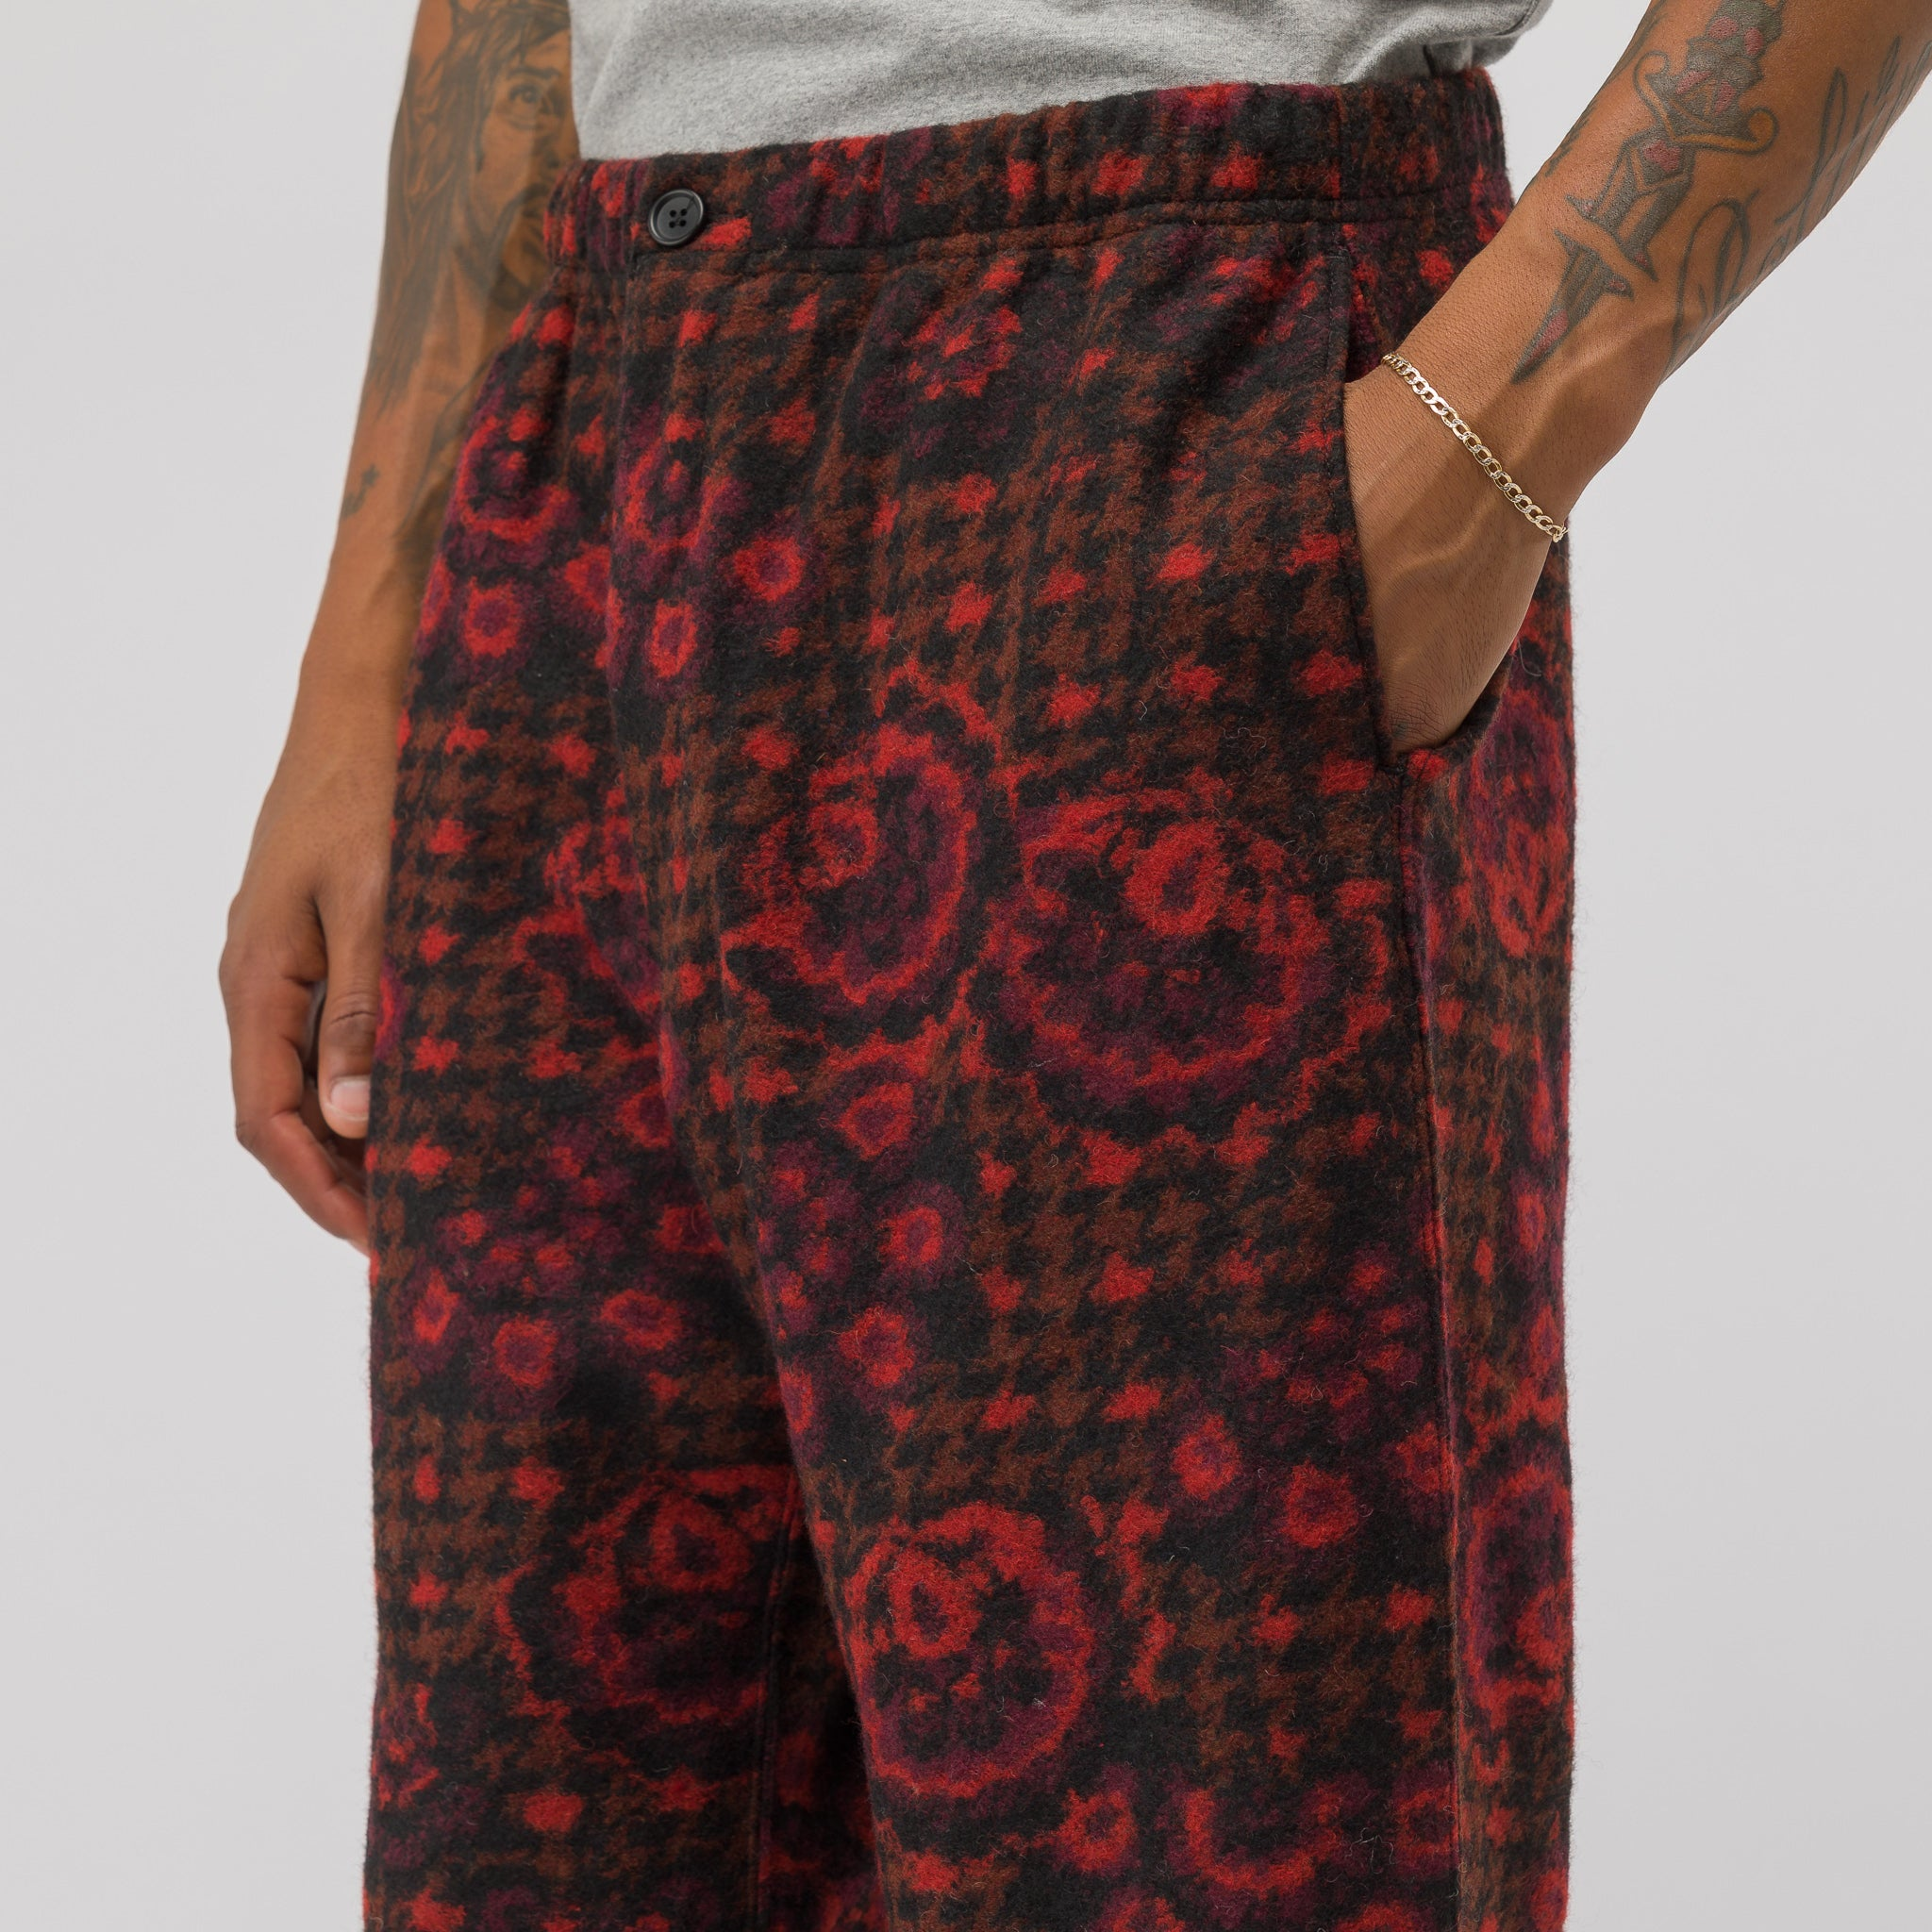 Jog Pant in Red/Black